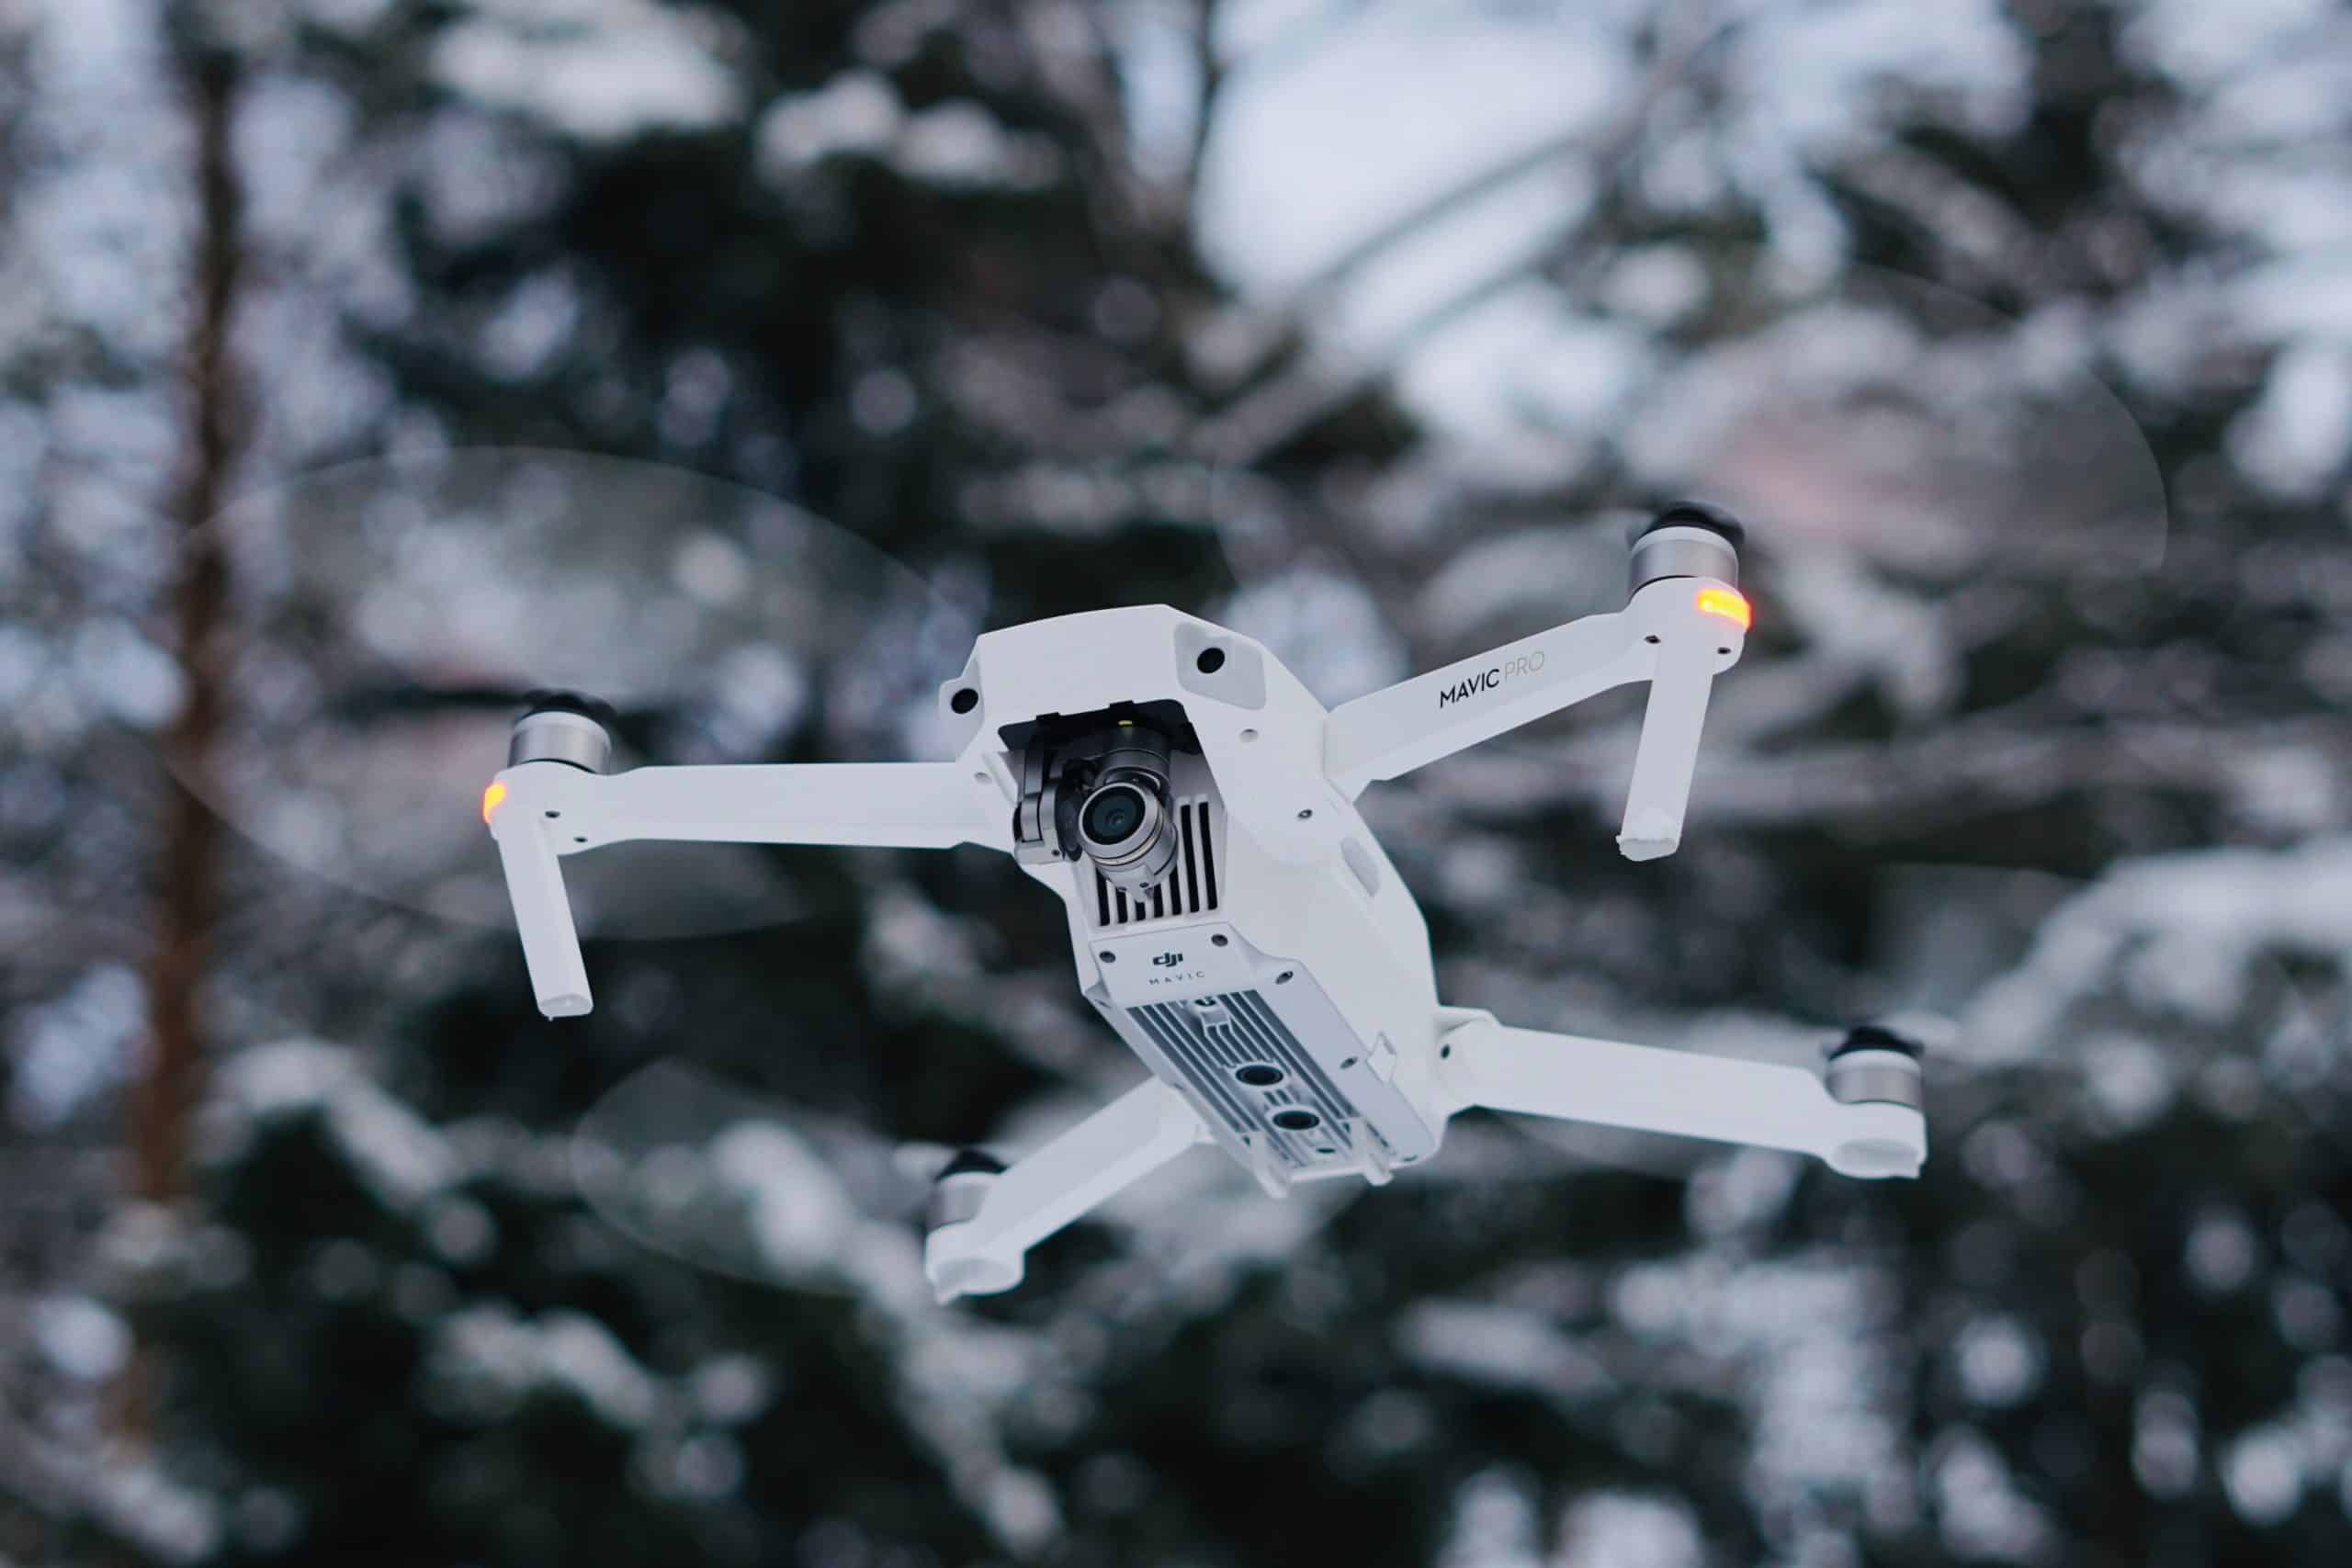 A Beginner's Guide To A Quadrocopter